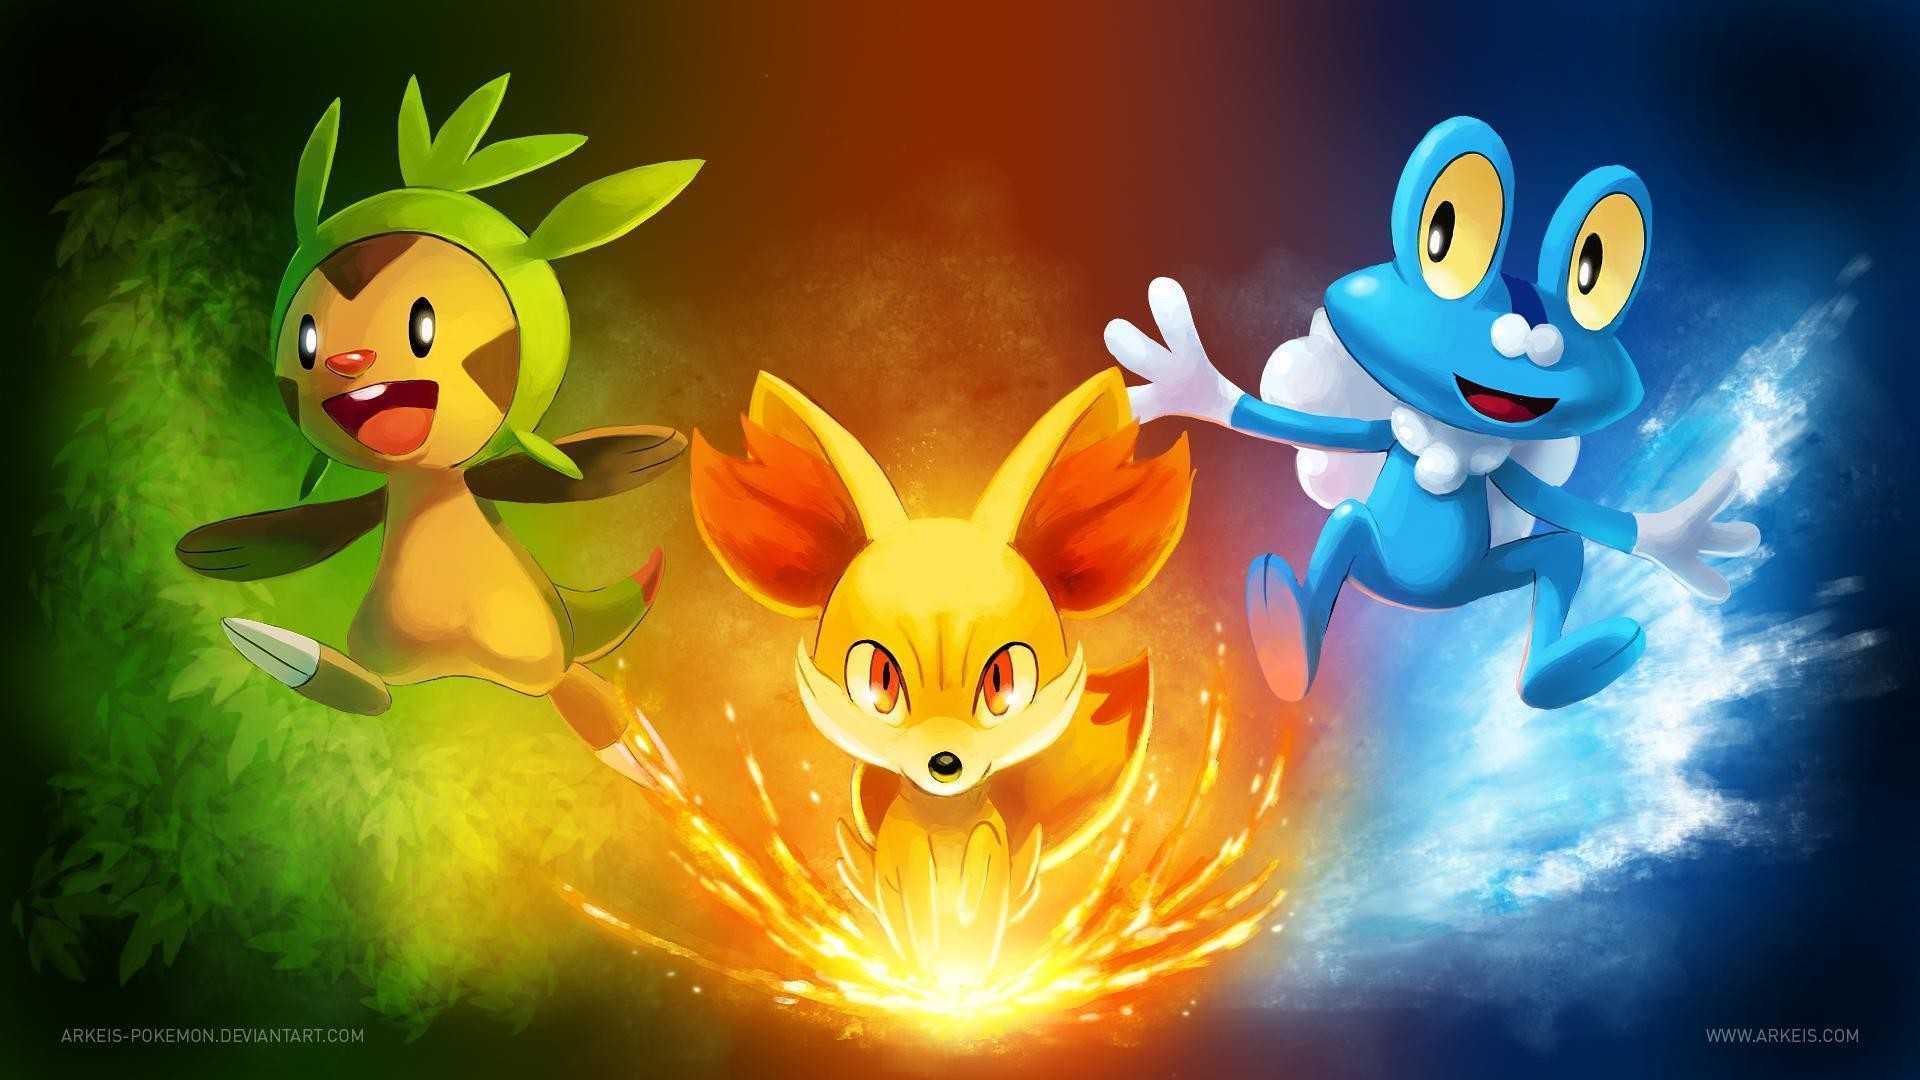 1920x1080 Pokemon X and Y HD Desktop Wallpaper  1080p hd wallpaper#1511